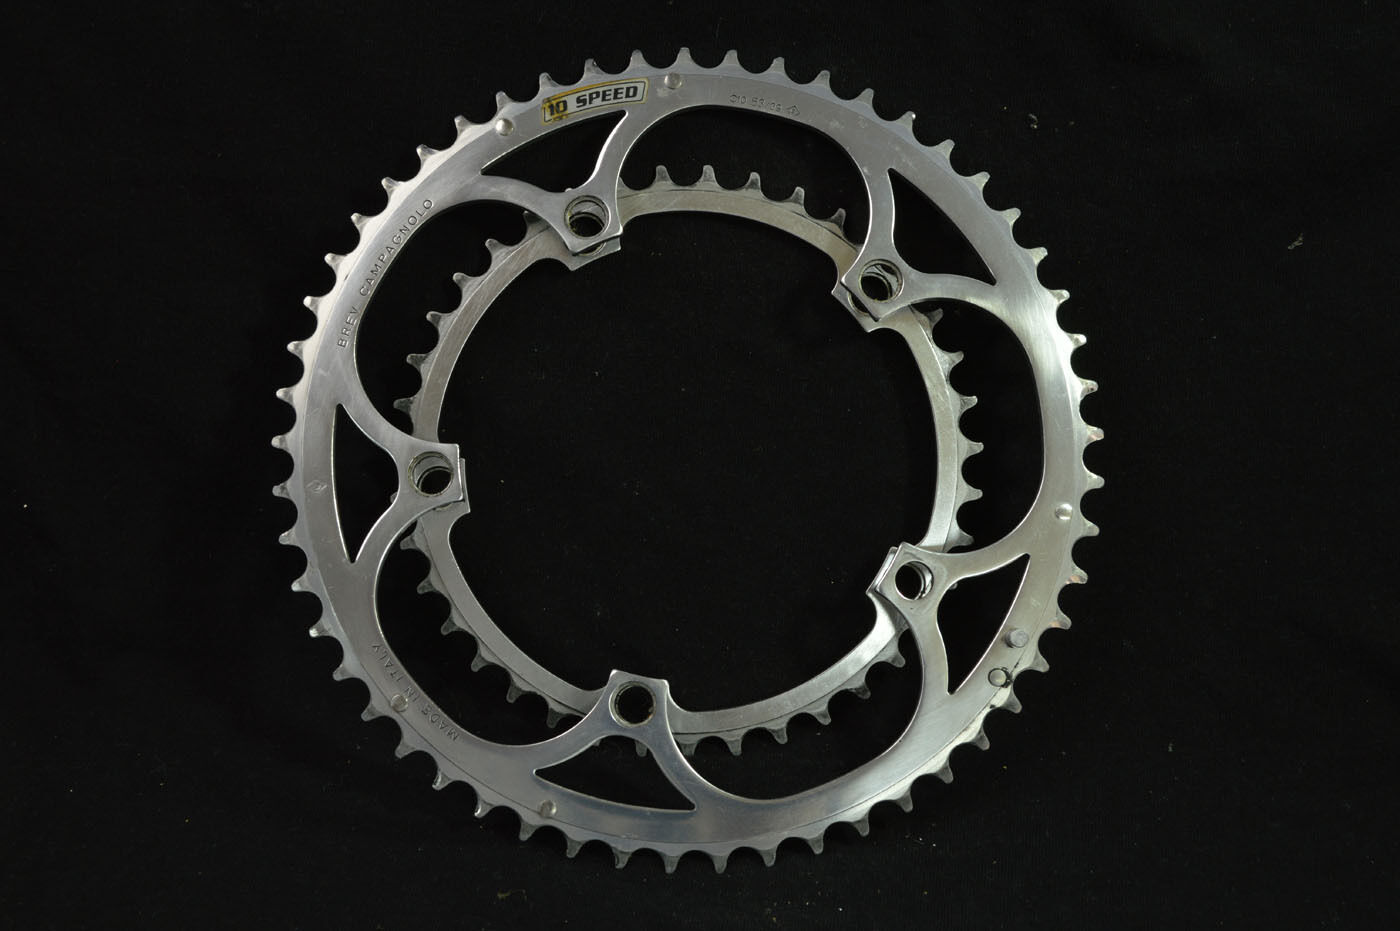 2x Chainring Campagnolo record c-10 10 speed alloy 53t 39t  bcd 135